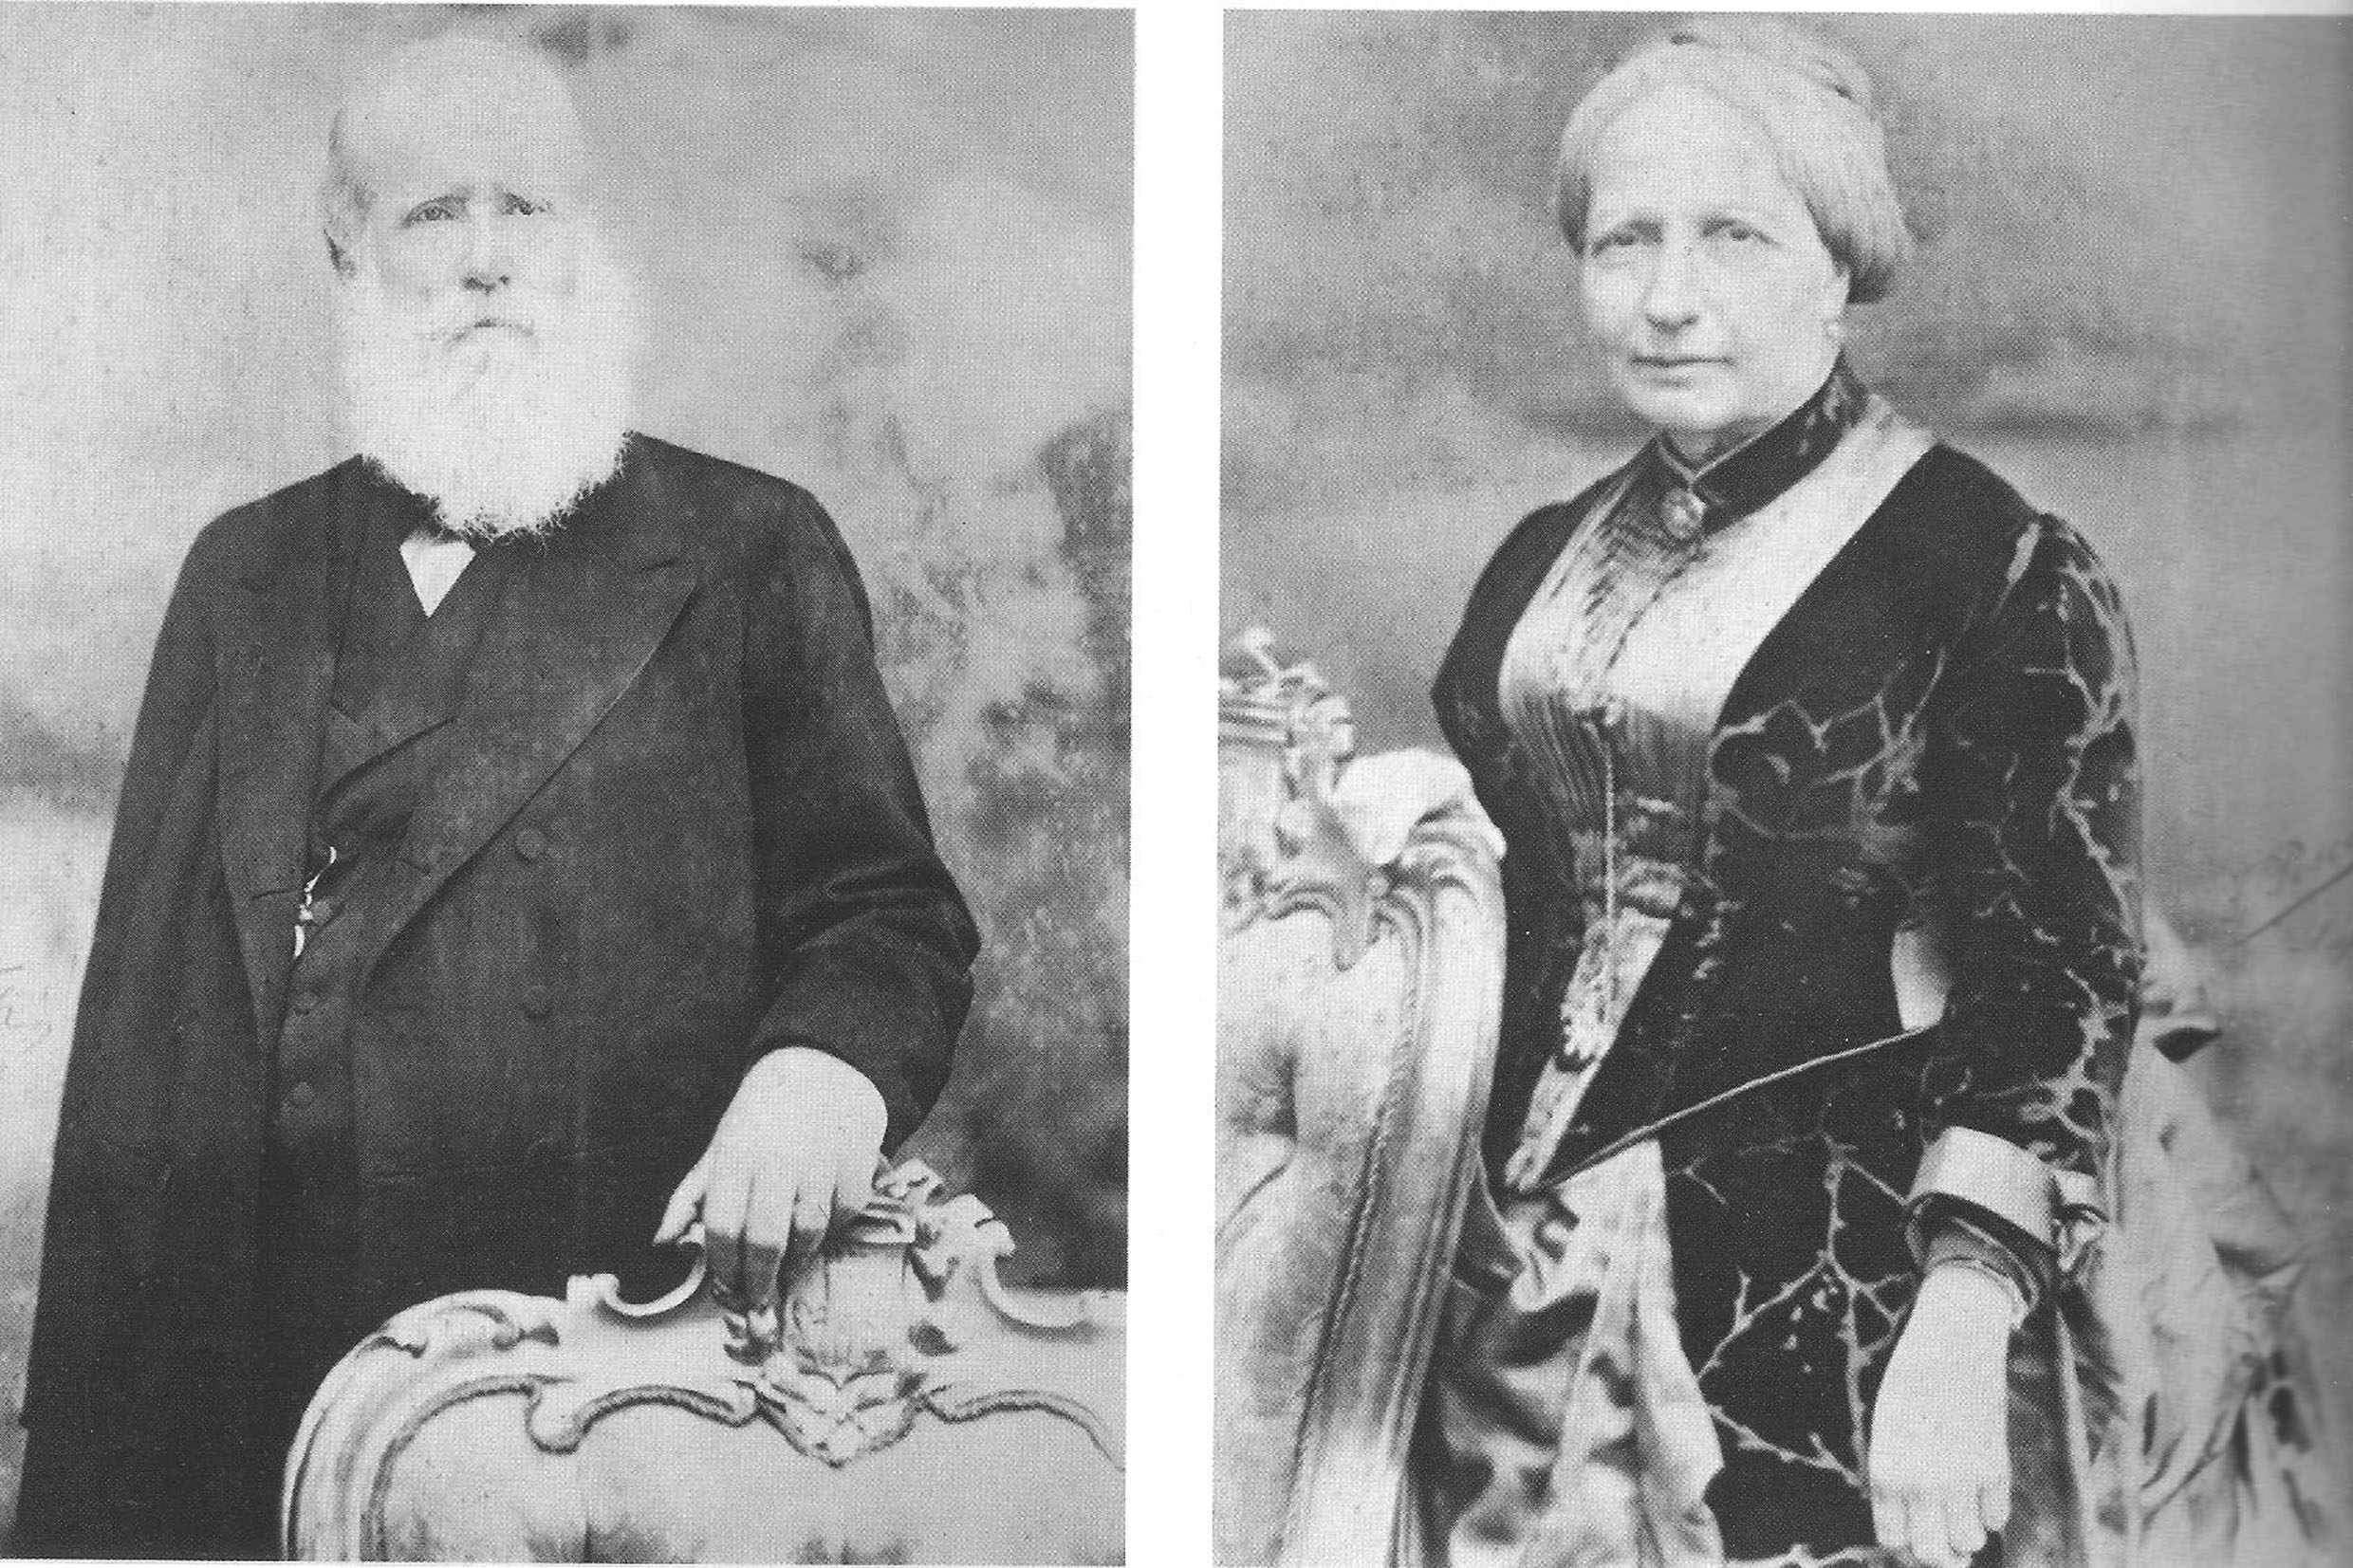 D. Pedro II e Da. Thereza Cristina<a style='float:right' href='https://www3.al.sp.gov.br/repositorio/noticia/N-11-2015/fg179023.jpg' target=_blank><img src='/_img/material-file-download-white.png' width='14px' alt='Clique para baixar a imagem'></a>